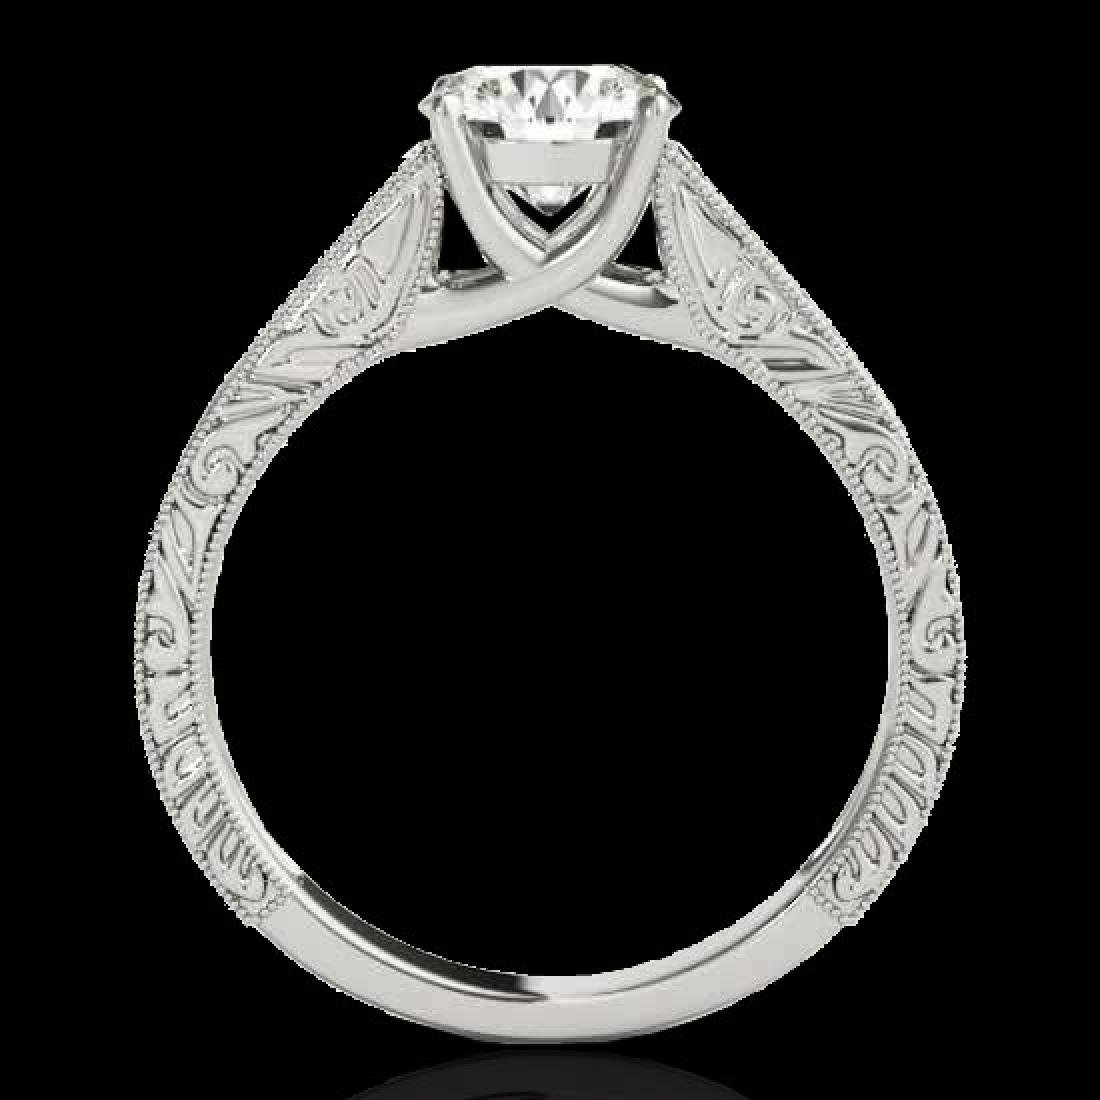 1.5 CTW H-SI/I Certified Diamond Solitaire Antique Ring - 2